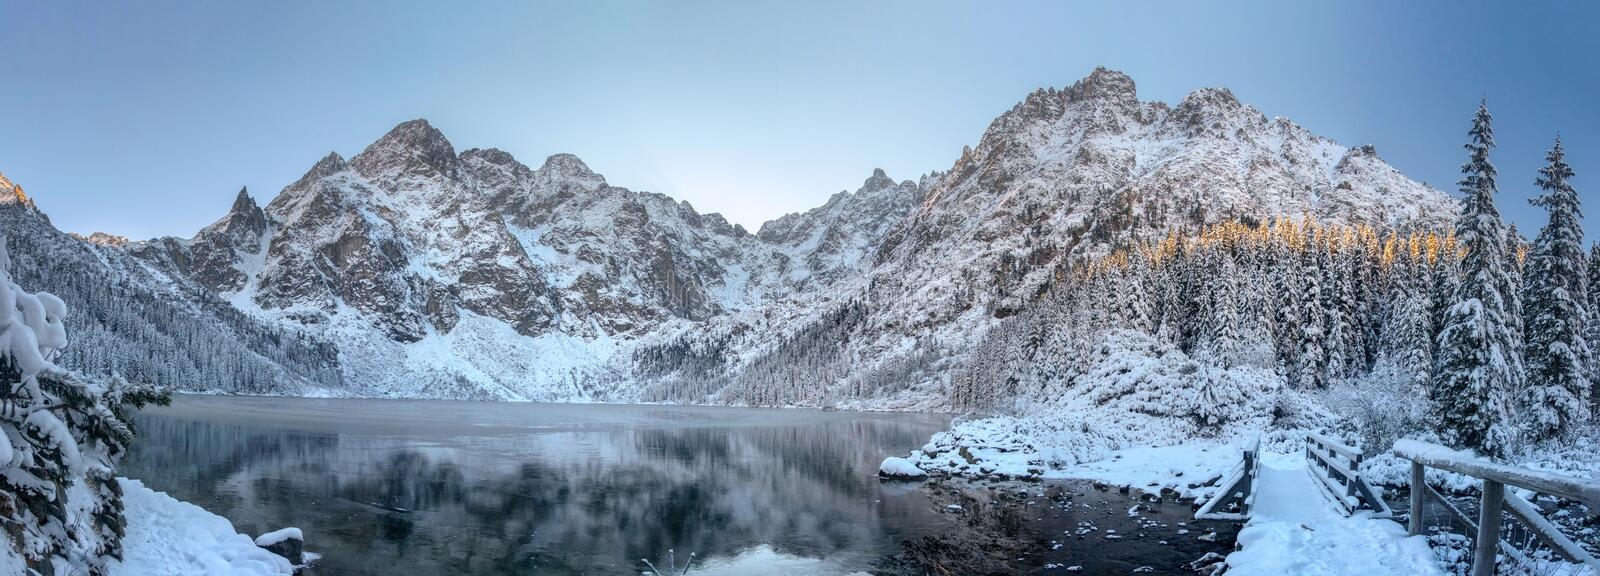 Panorama winter mountains. Scenery winter. Beautiful frosty and snowy nature. Ice mountain lake. winter landscape. Panoramic view stock photography